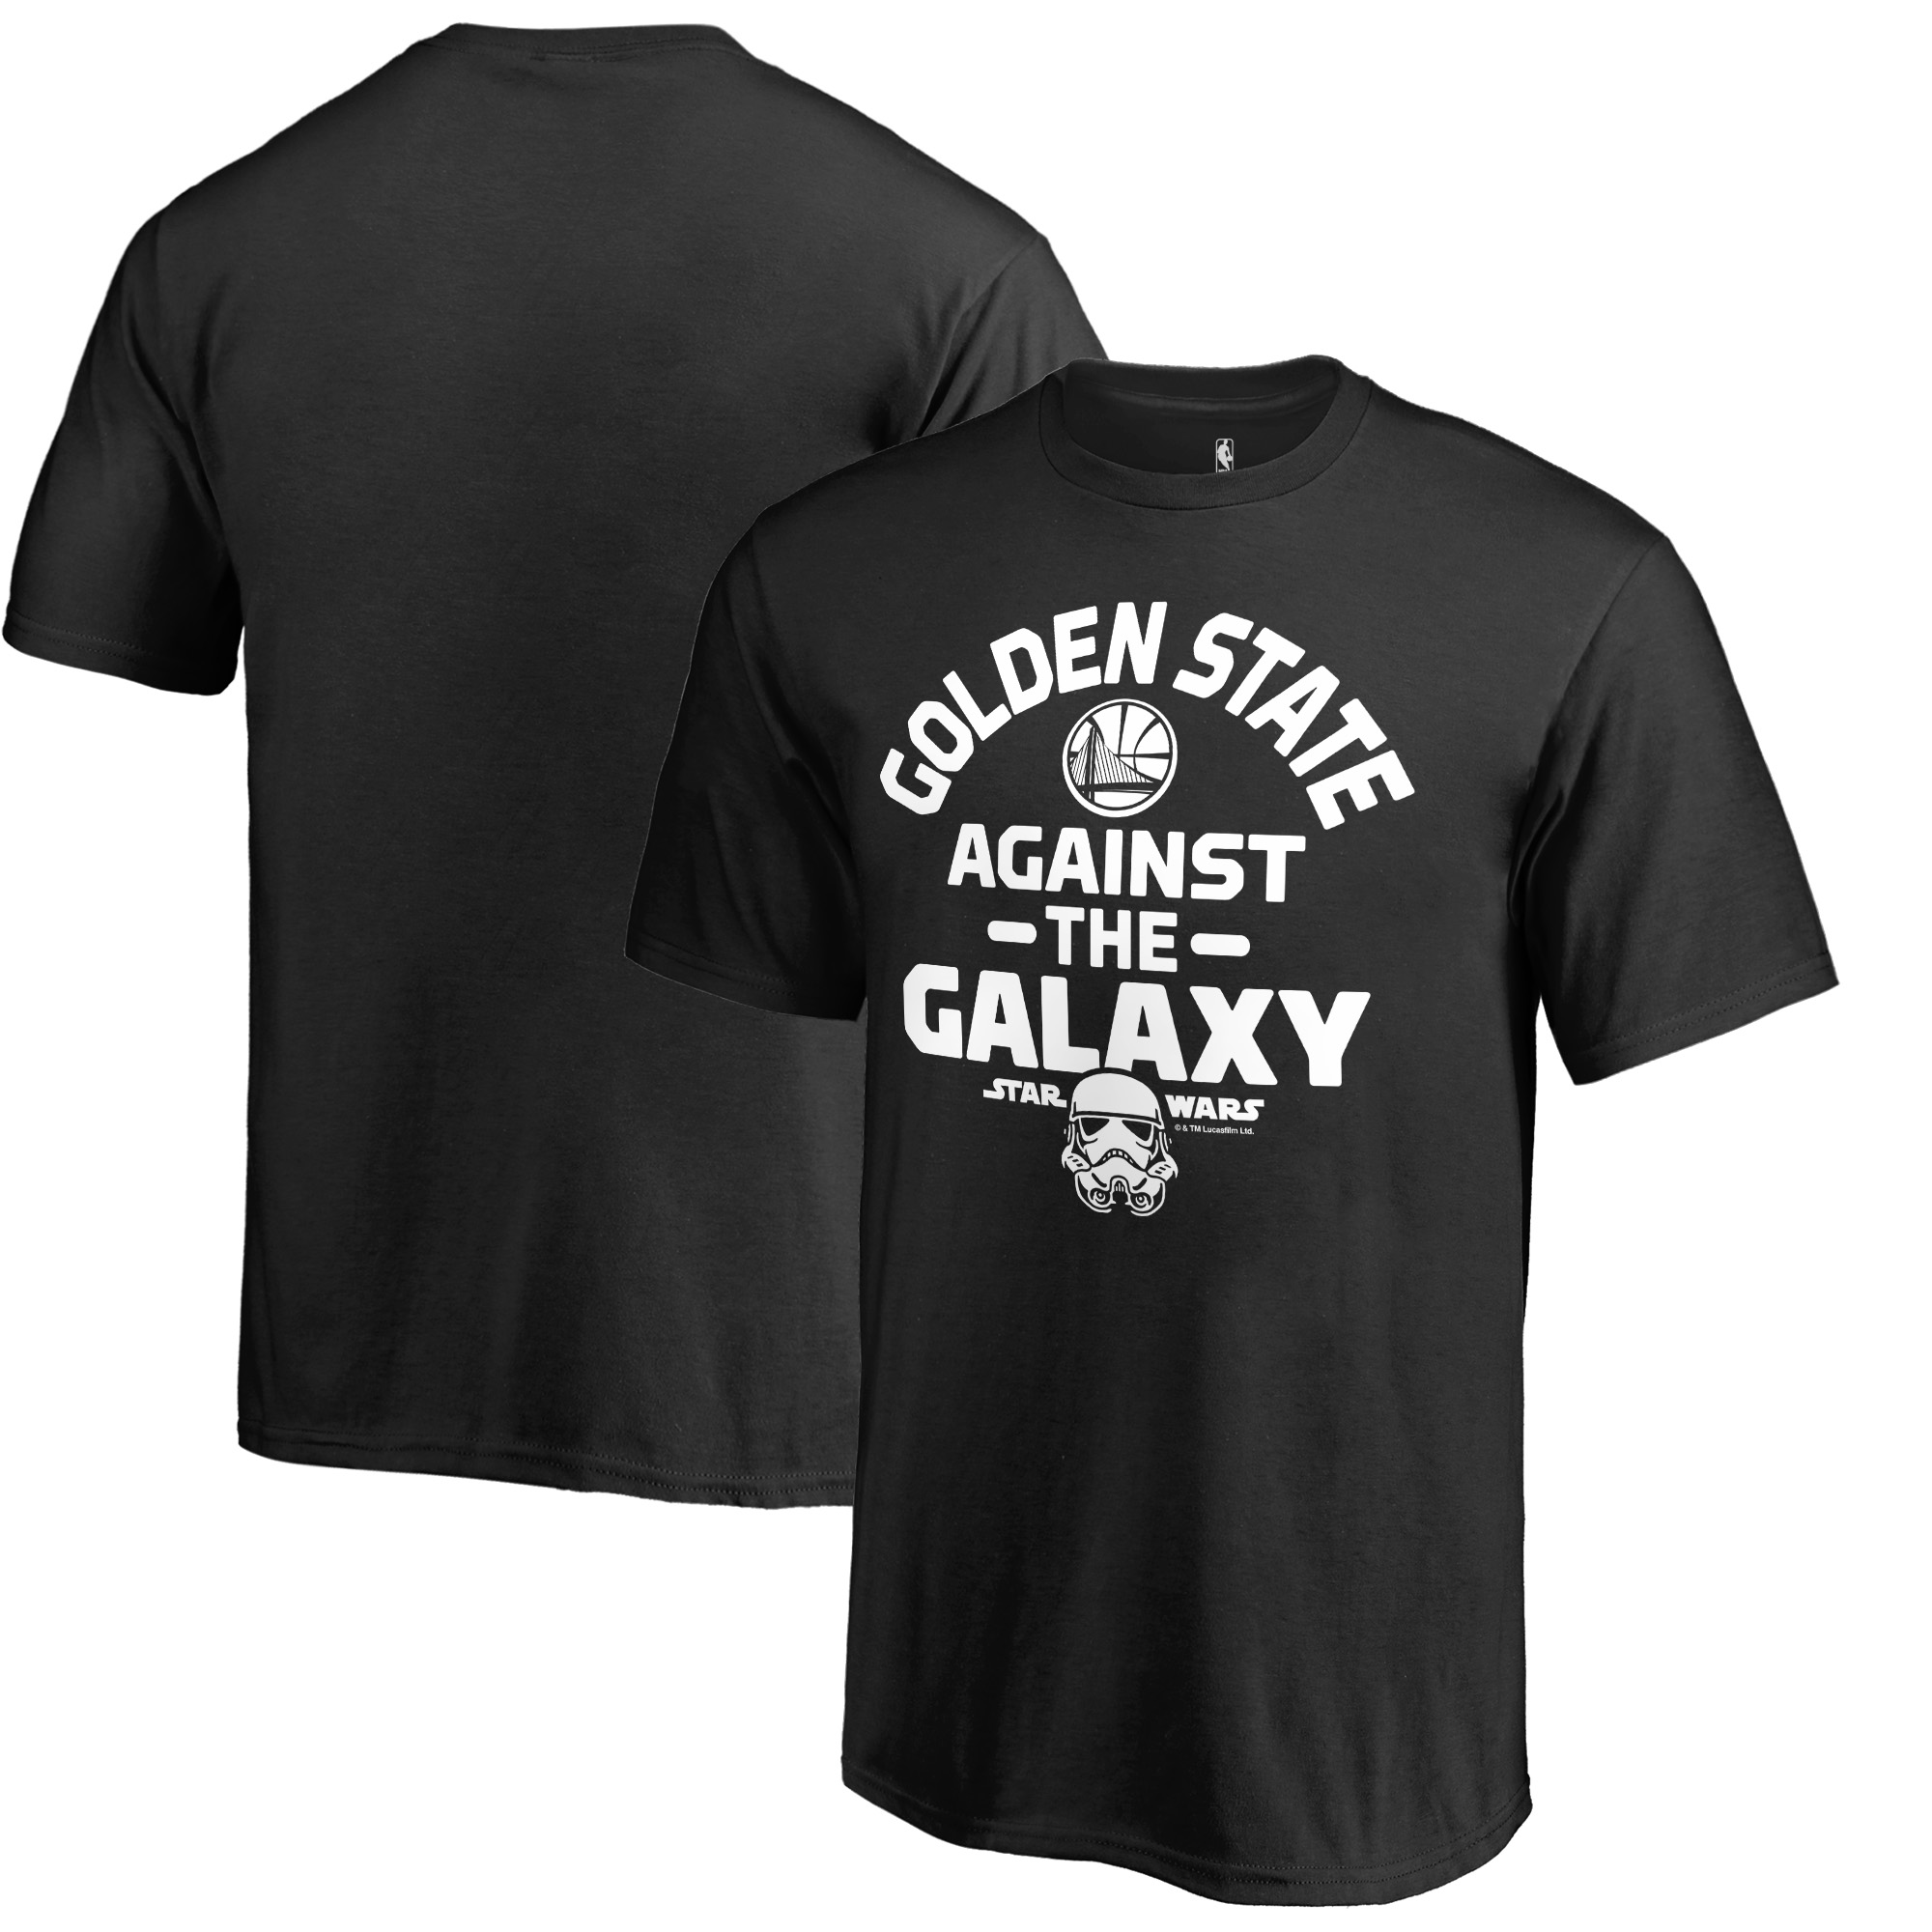 Golden State Warriors Fanatics Branded Youth Star Wars Against the Galaxy T-Shirt - Black